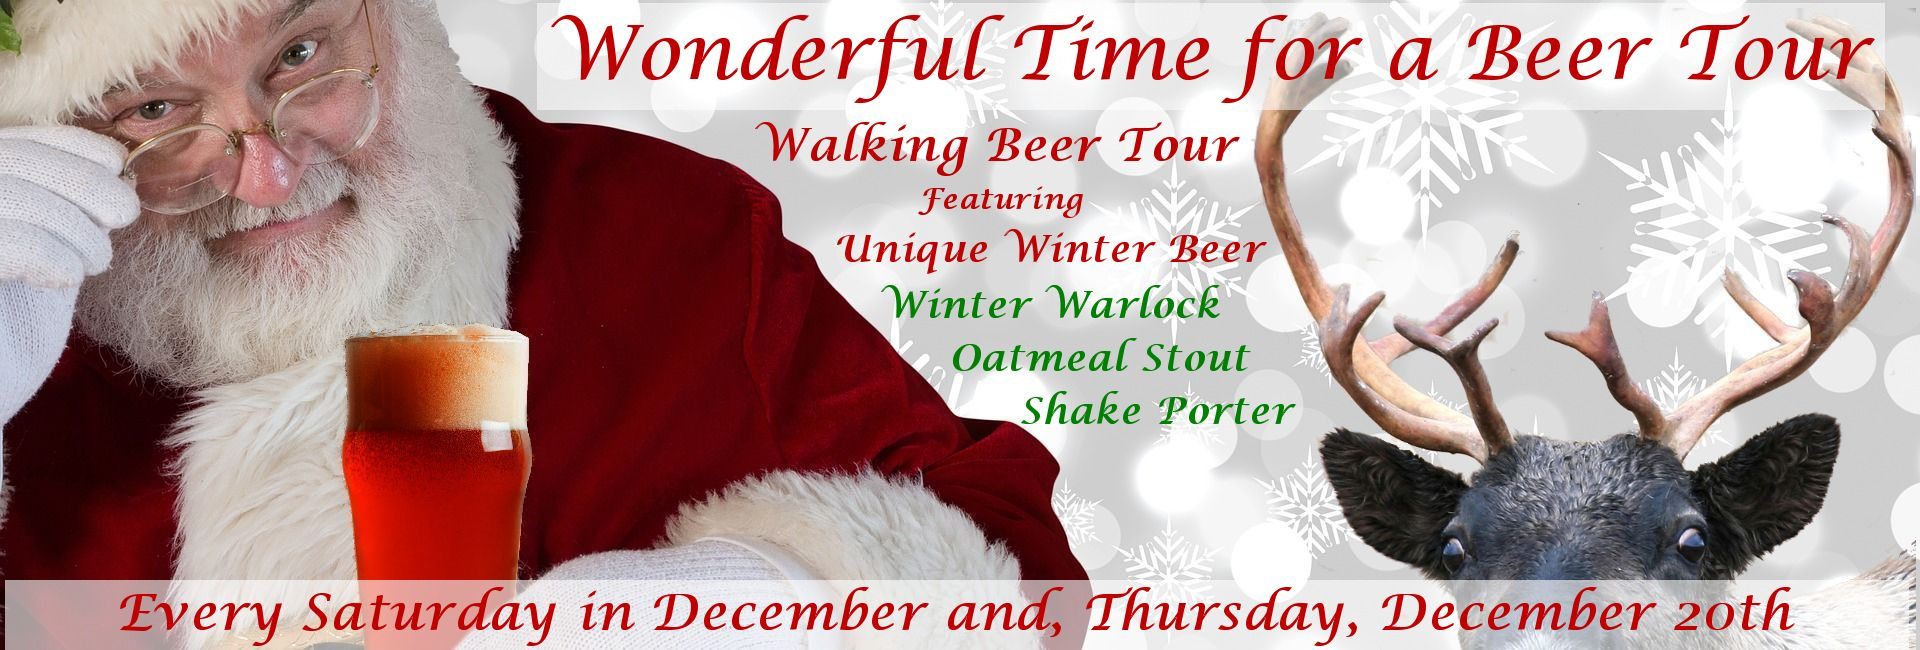 Wonderful Time for a Beer Tour